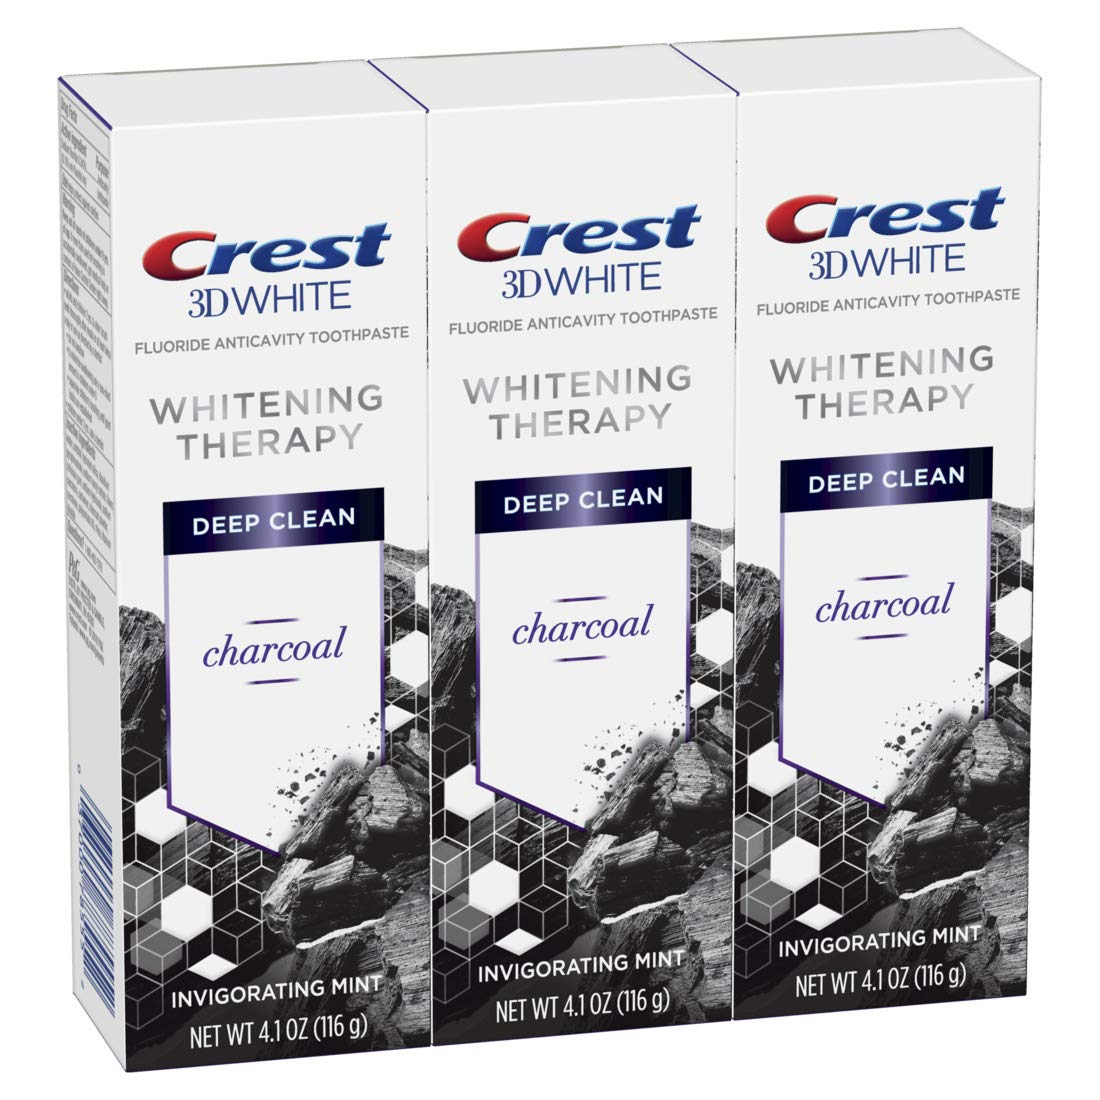 Crest Charcoal 3D White Toothpaste, Whitening Therapy Deep Clean with Fluoride, Invigorating Mint, 4.1 Ounce, Pack of 3